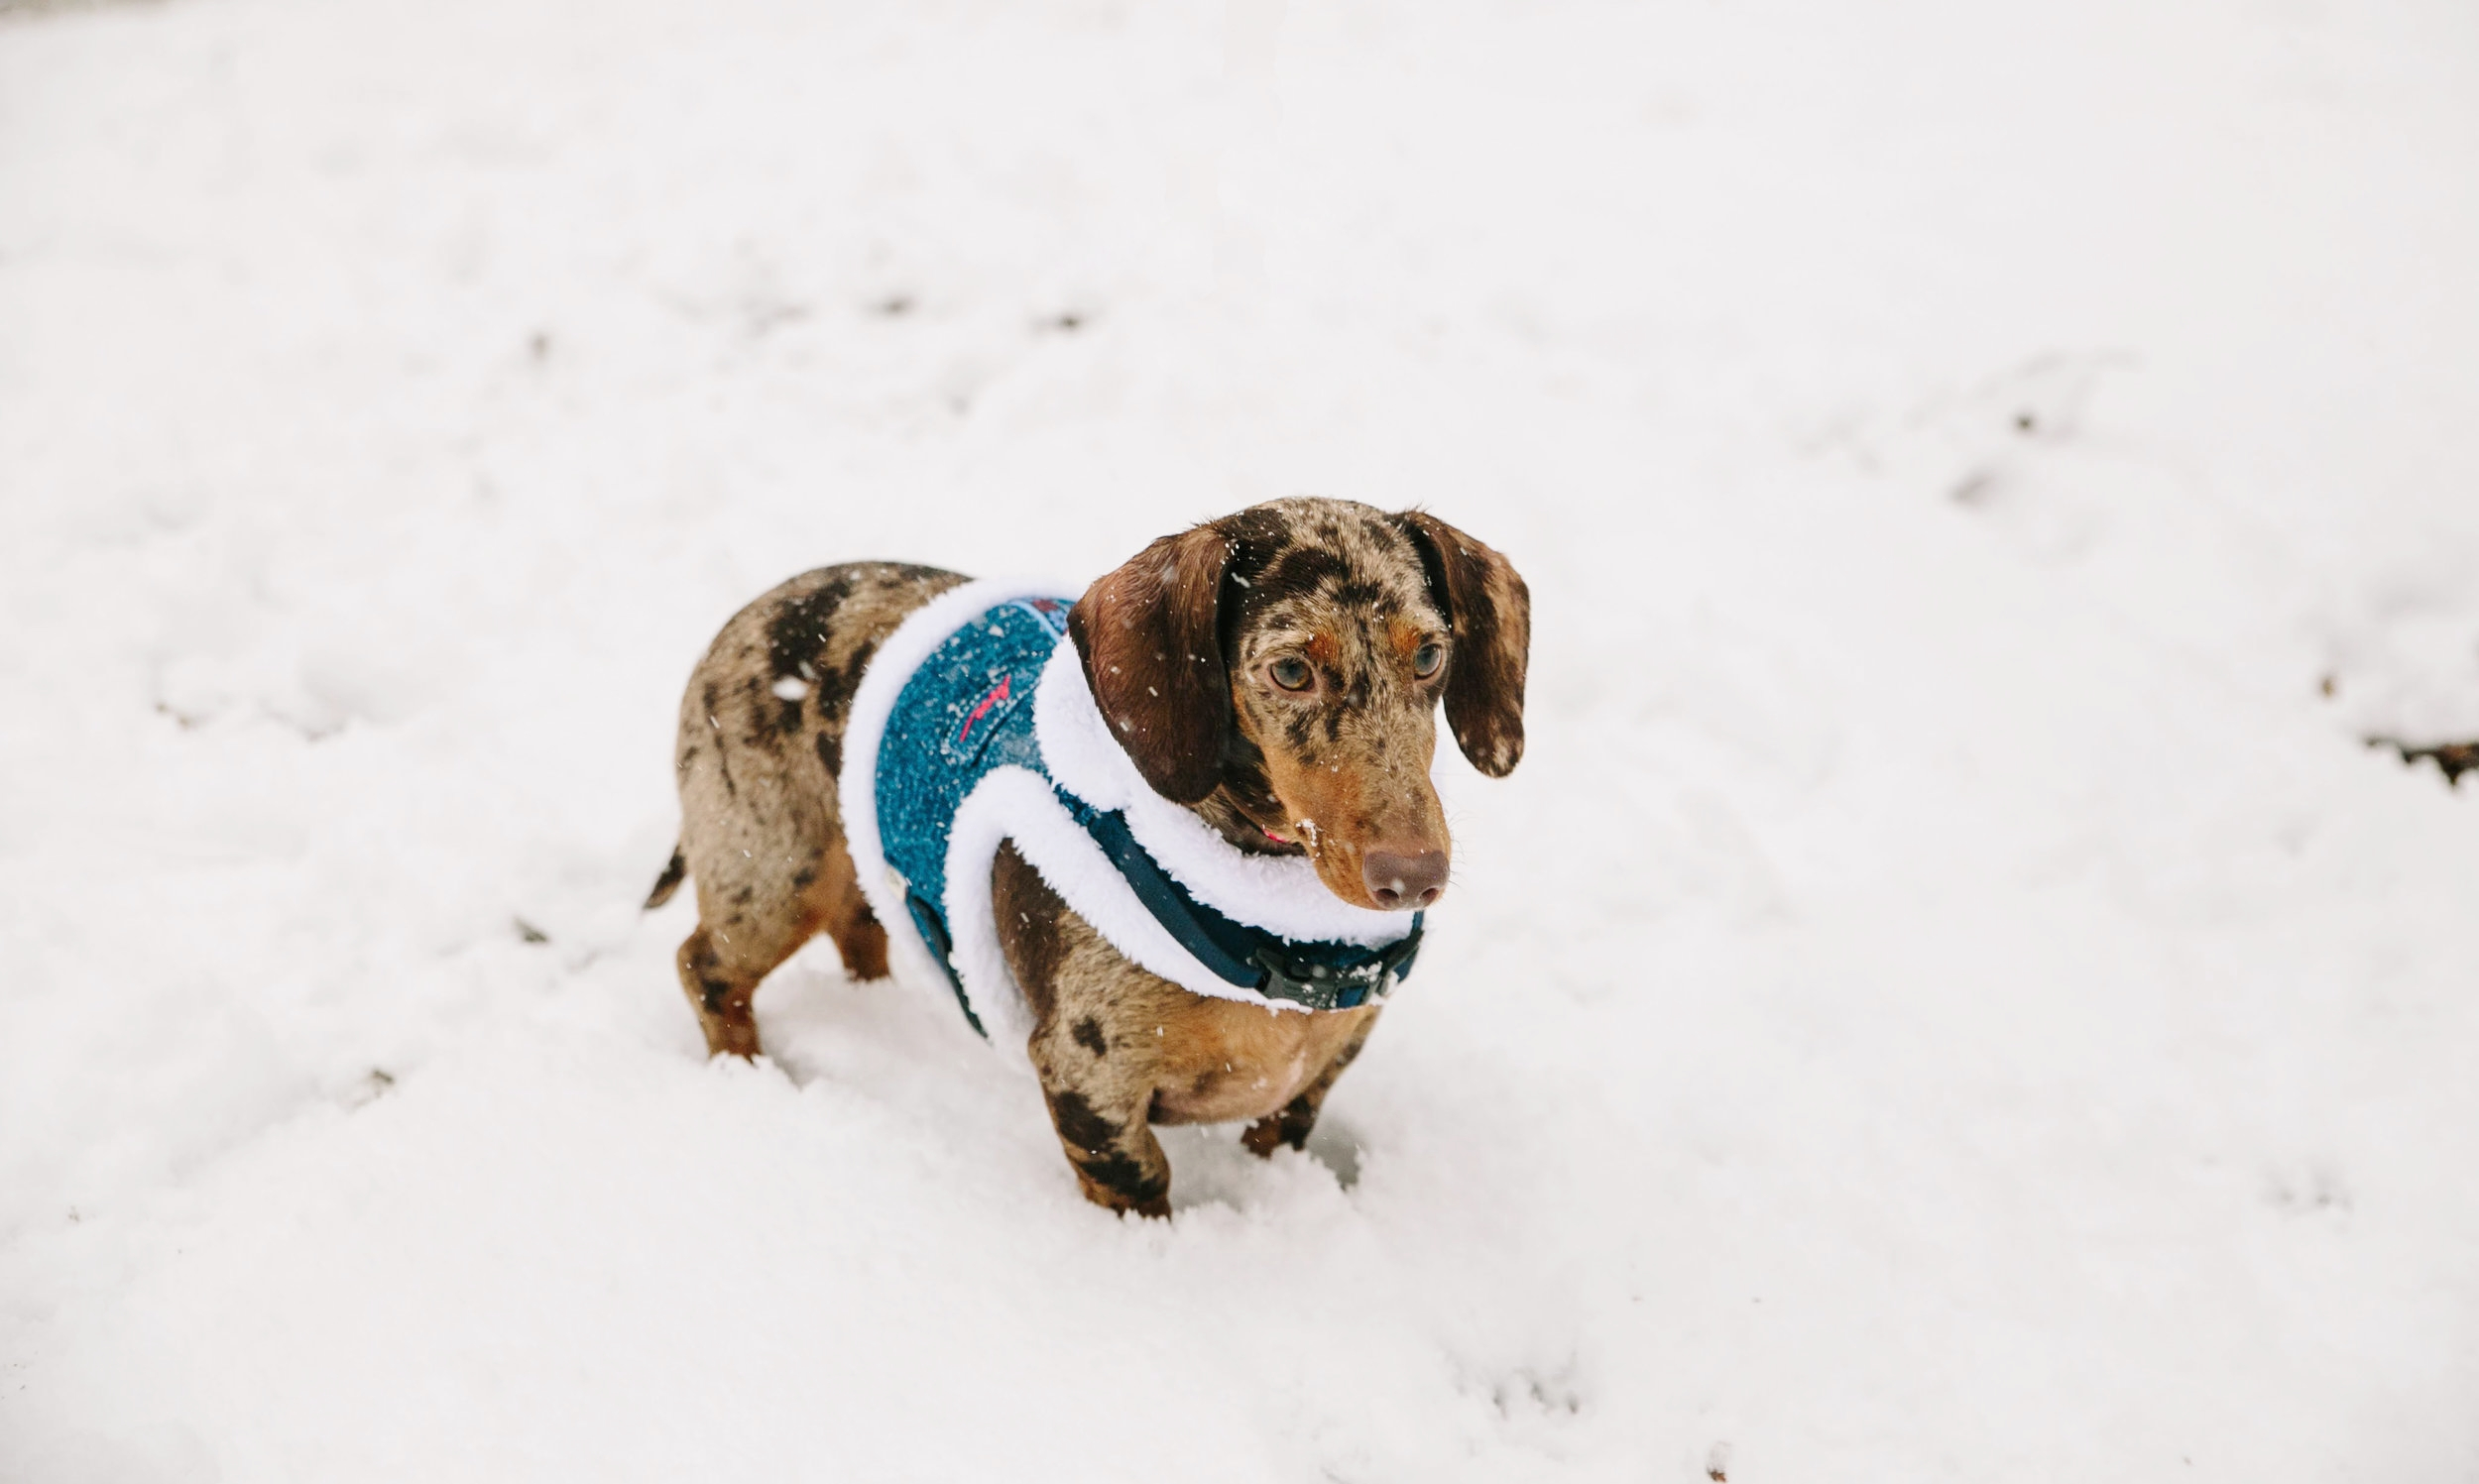 Dave playing in Saturday's snow